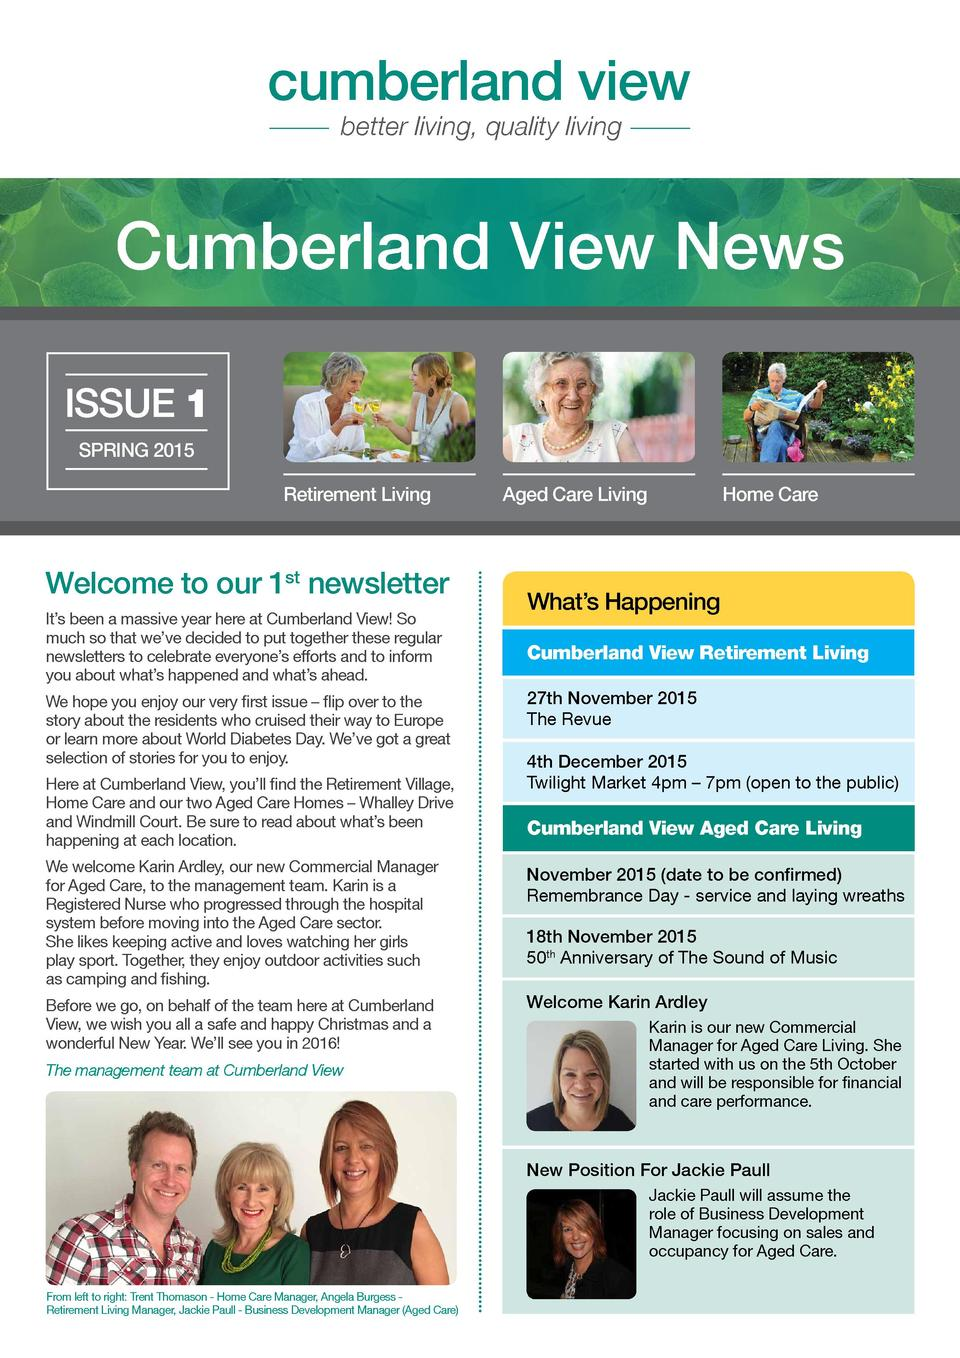 cumberland view better living, quality living  Cumberland View News ISSUE 1 SPRING 2015 Retirement Living  Welcome to our ...